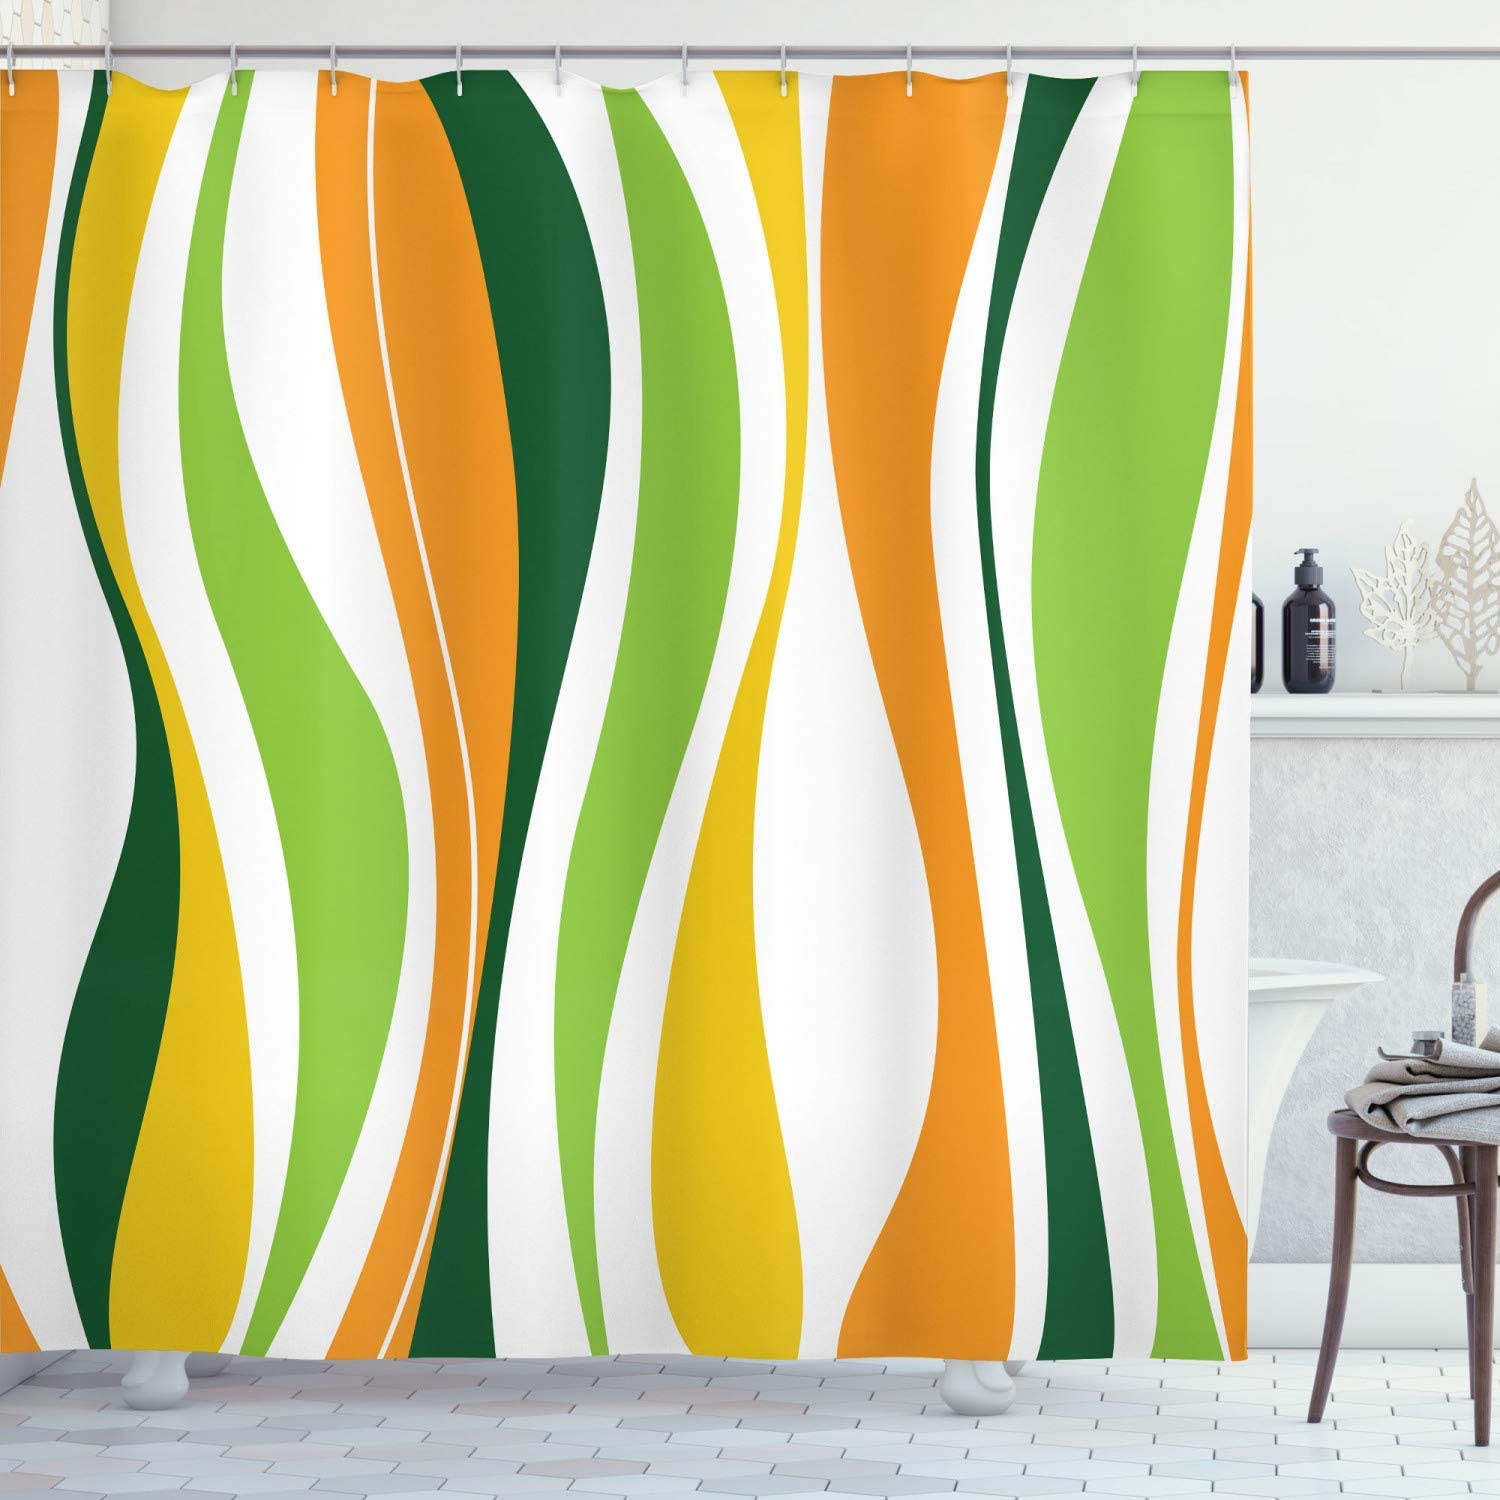 Ambesonne Vintage Shower Curtain, Retro Vibrant Stripes Funky Lines Design Patterns Abstract Print, Cloth Fabric Bathroom Decor Set with Hooks, 70